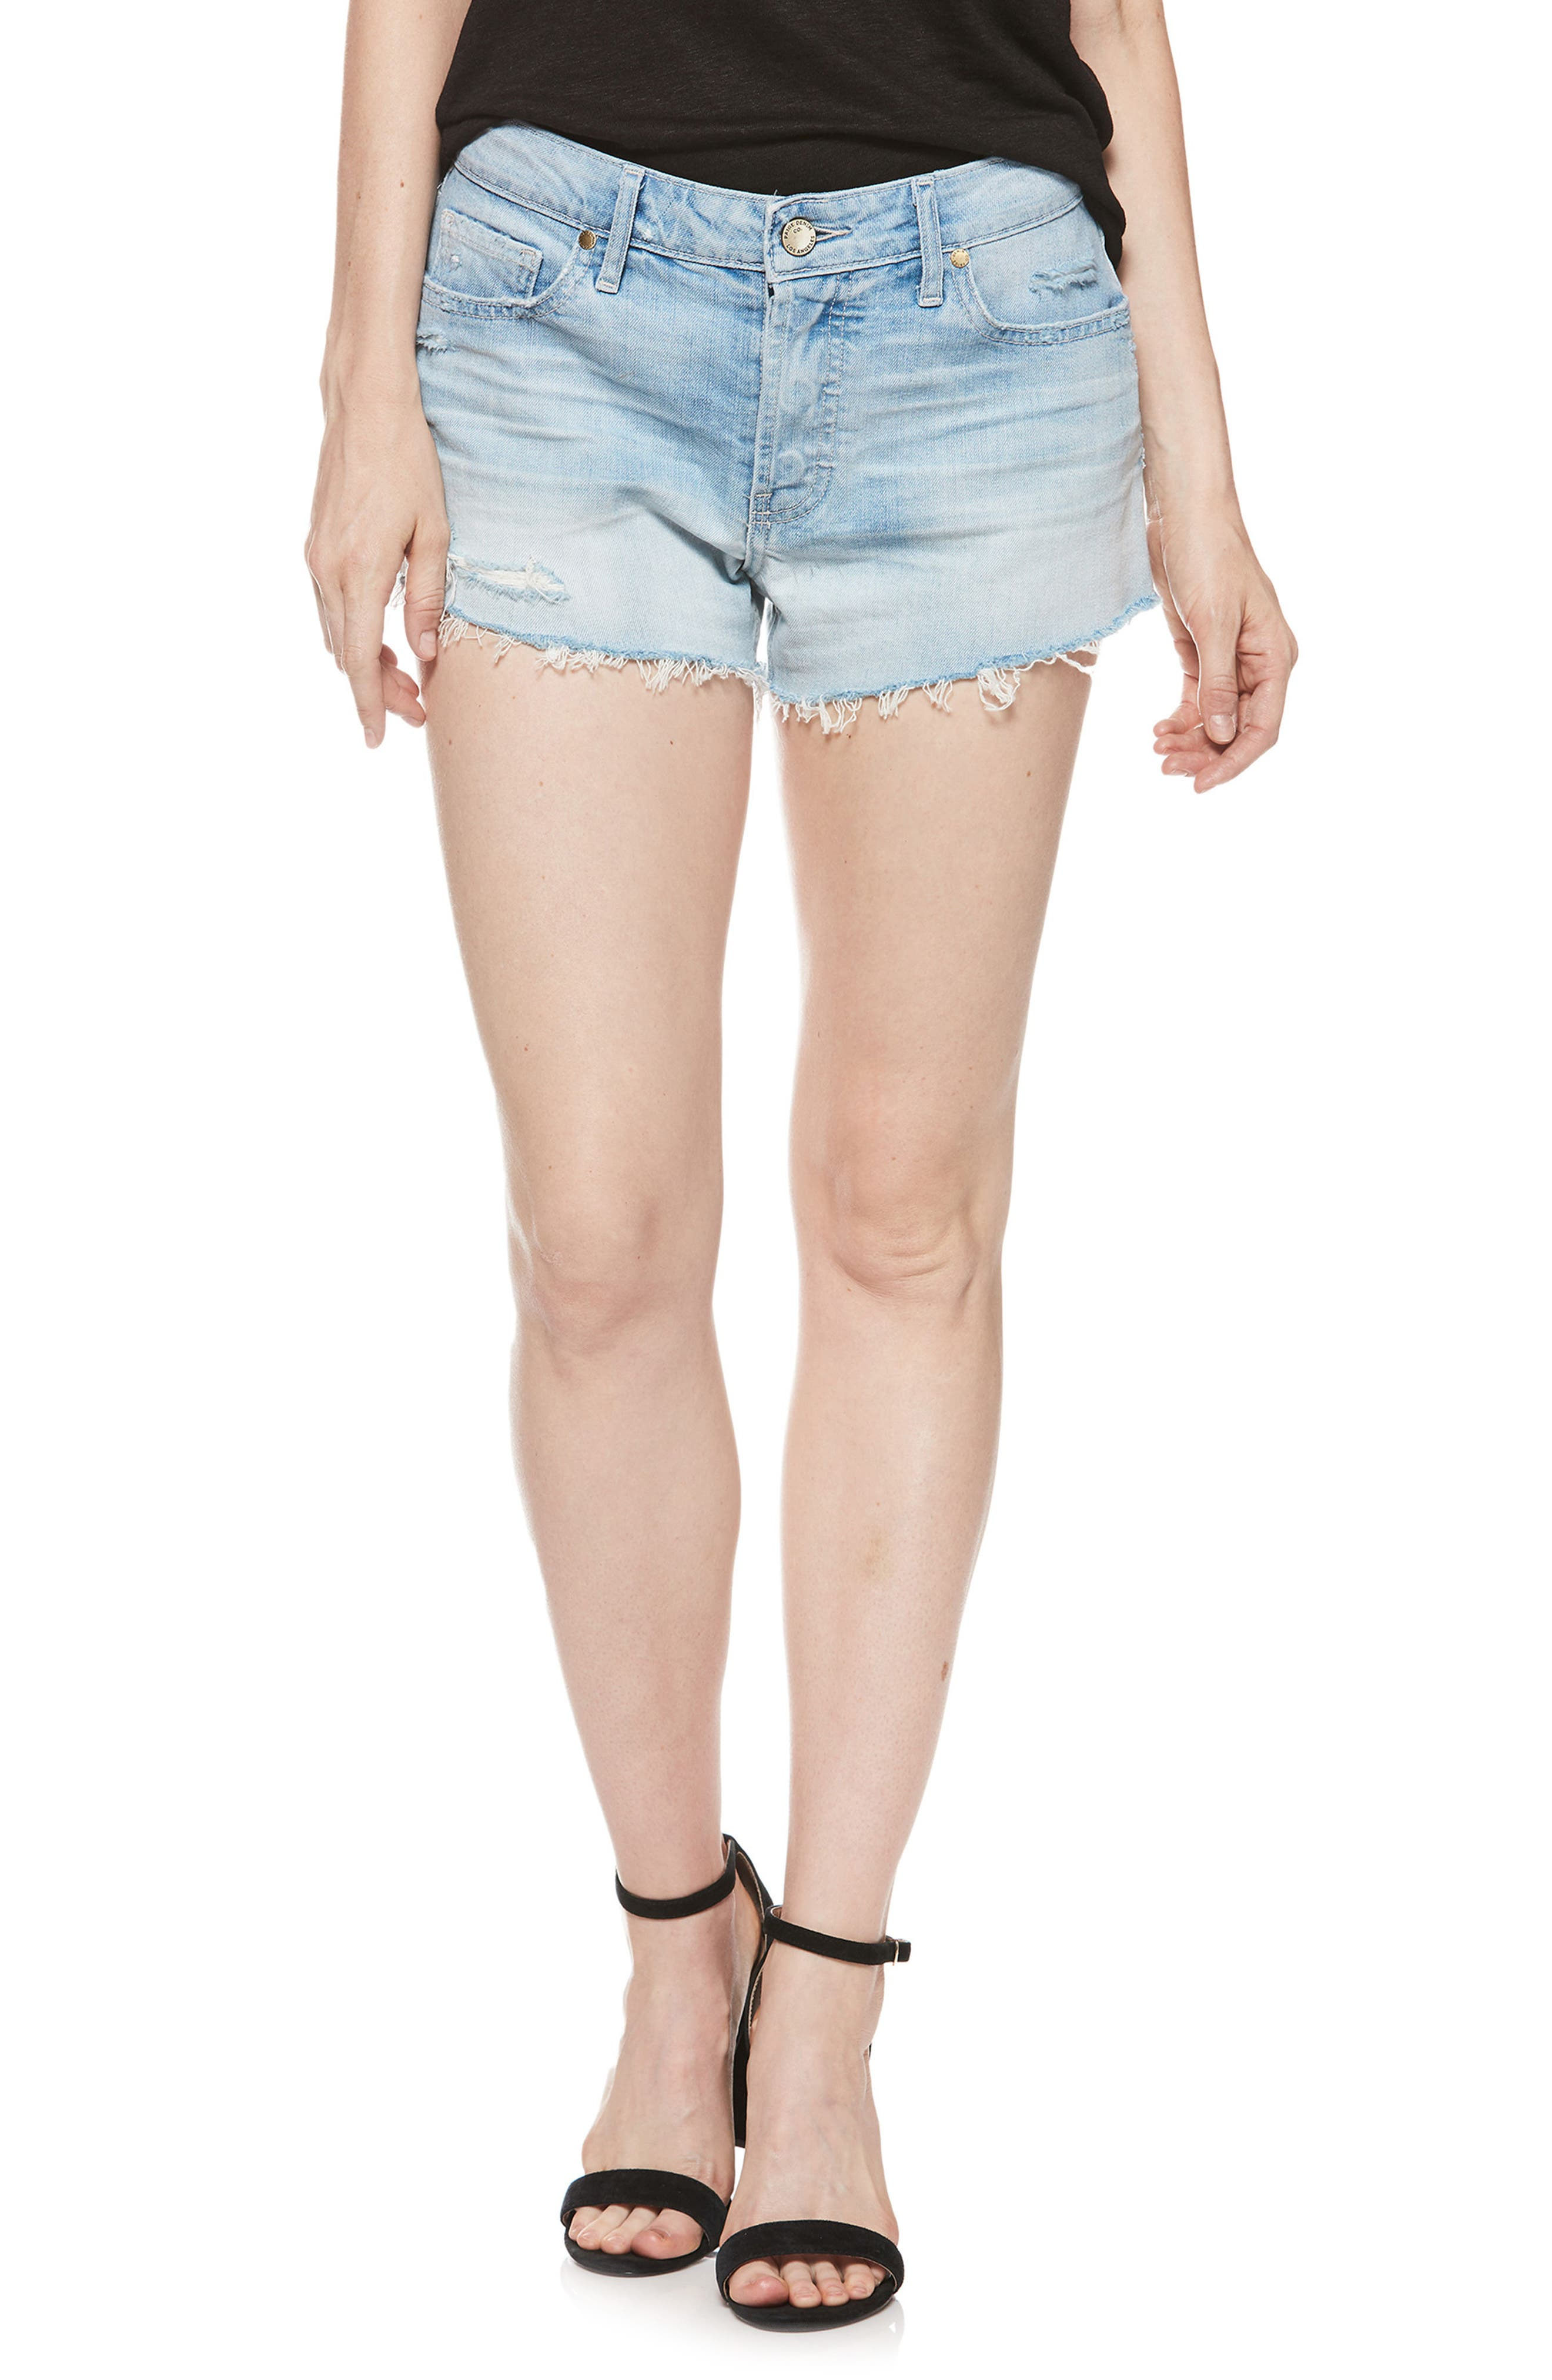 Emmit Relaxed Denim Shorts,                             Main thumbnail 1, color,                             400